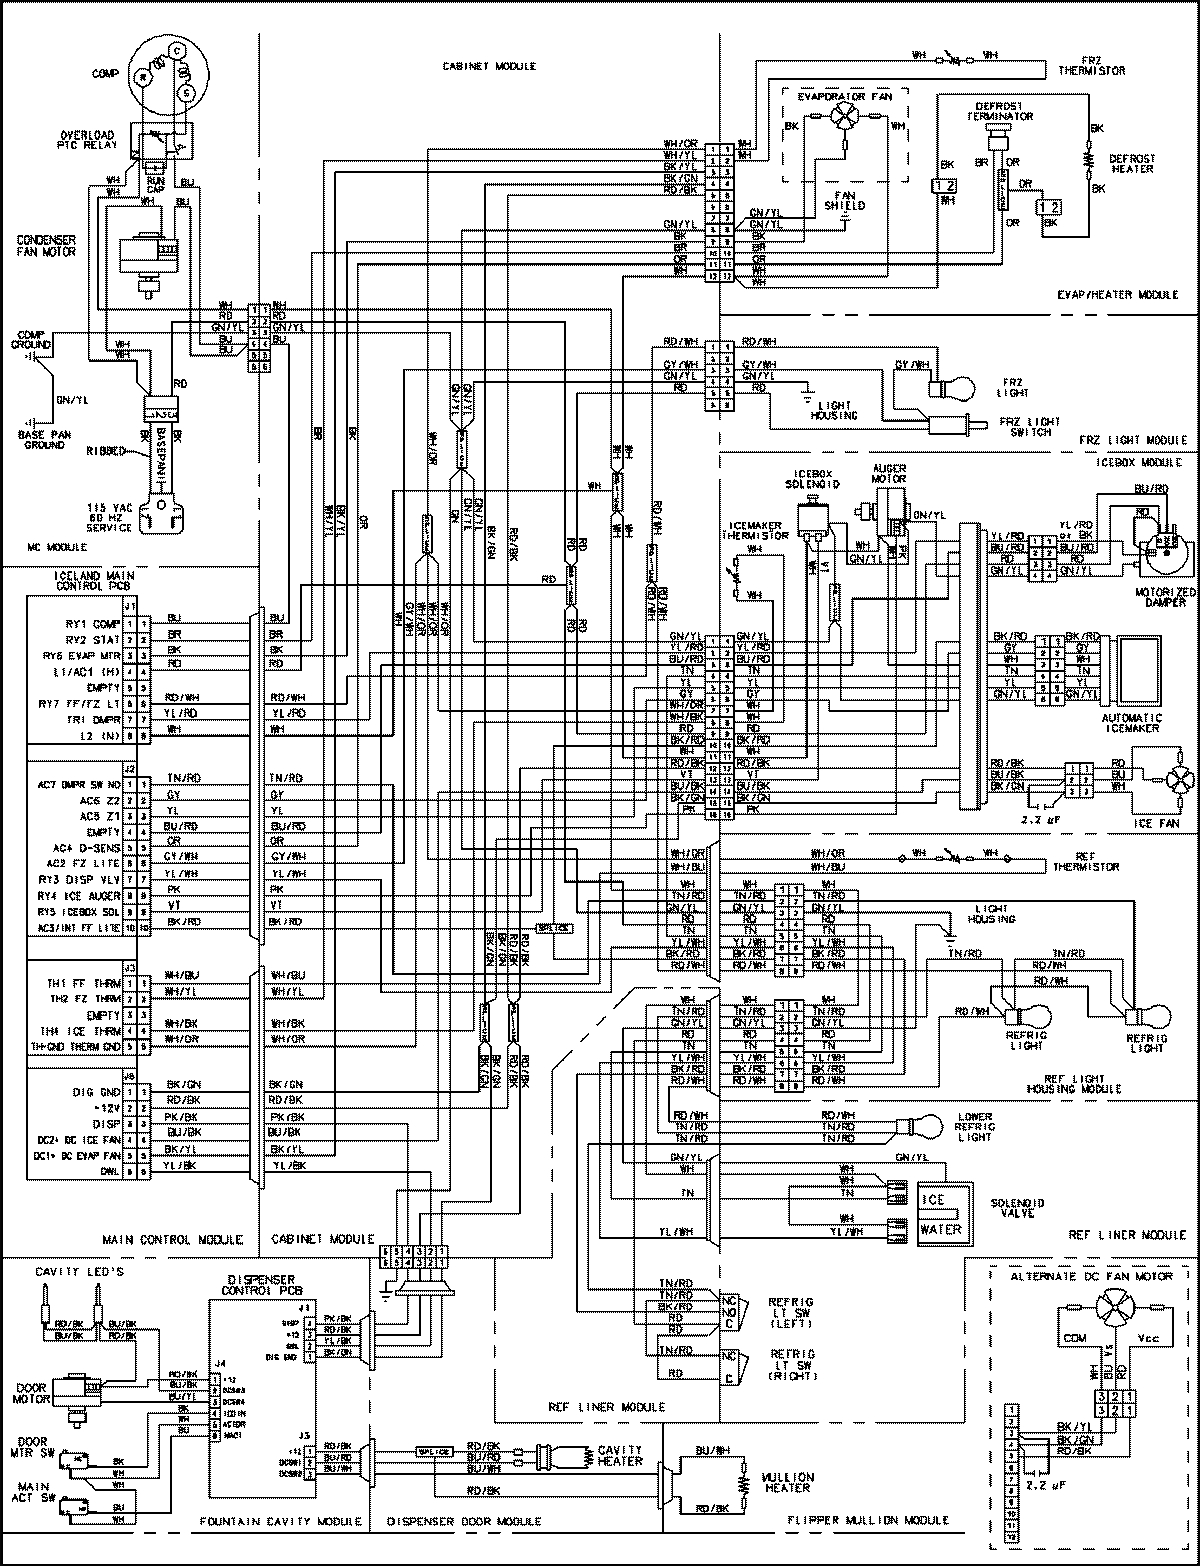 ge dryer start switch wiring diagram Collection-Ge Dryer Wiring Diagram Yirenlu Me Mesmerizing Wire Blurts 16-f